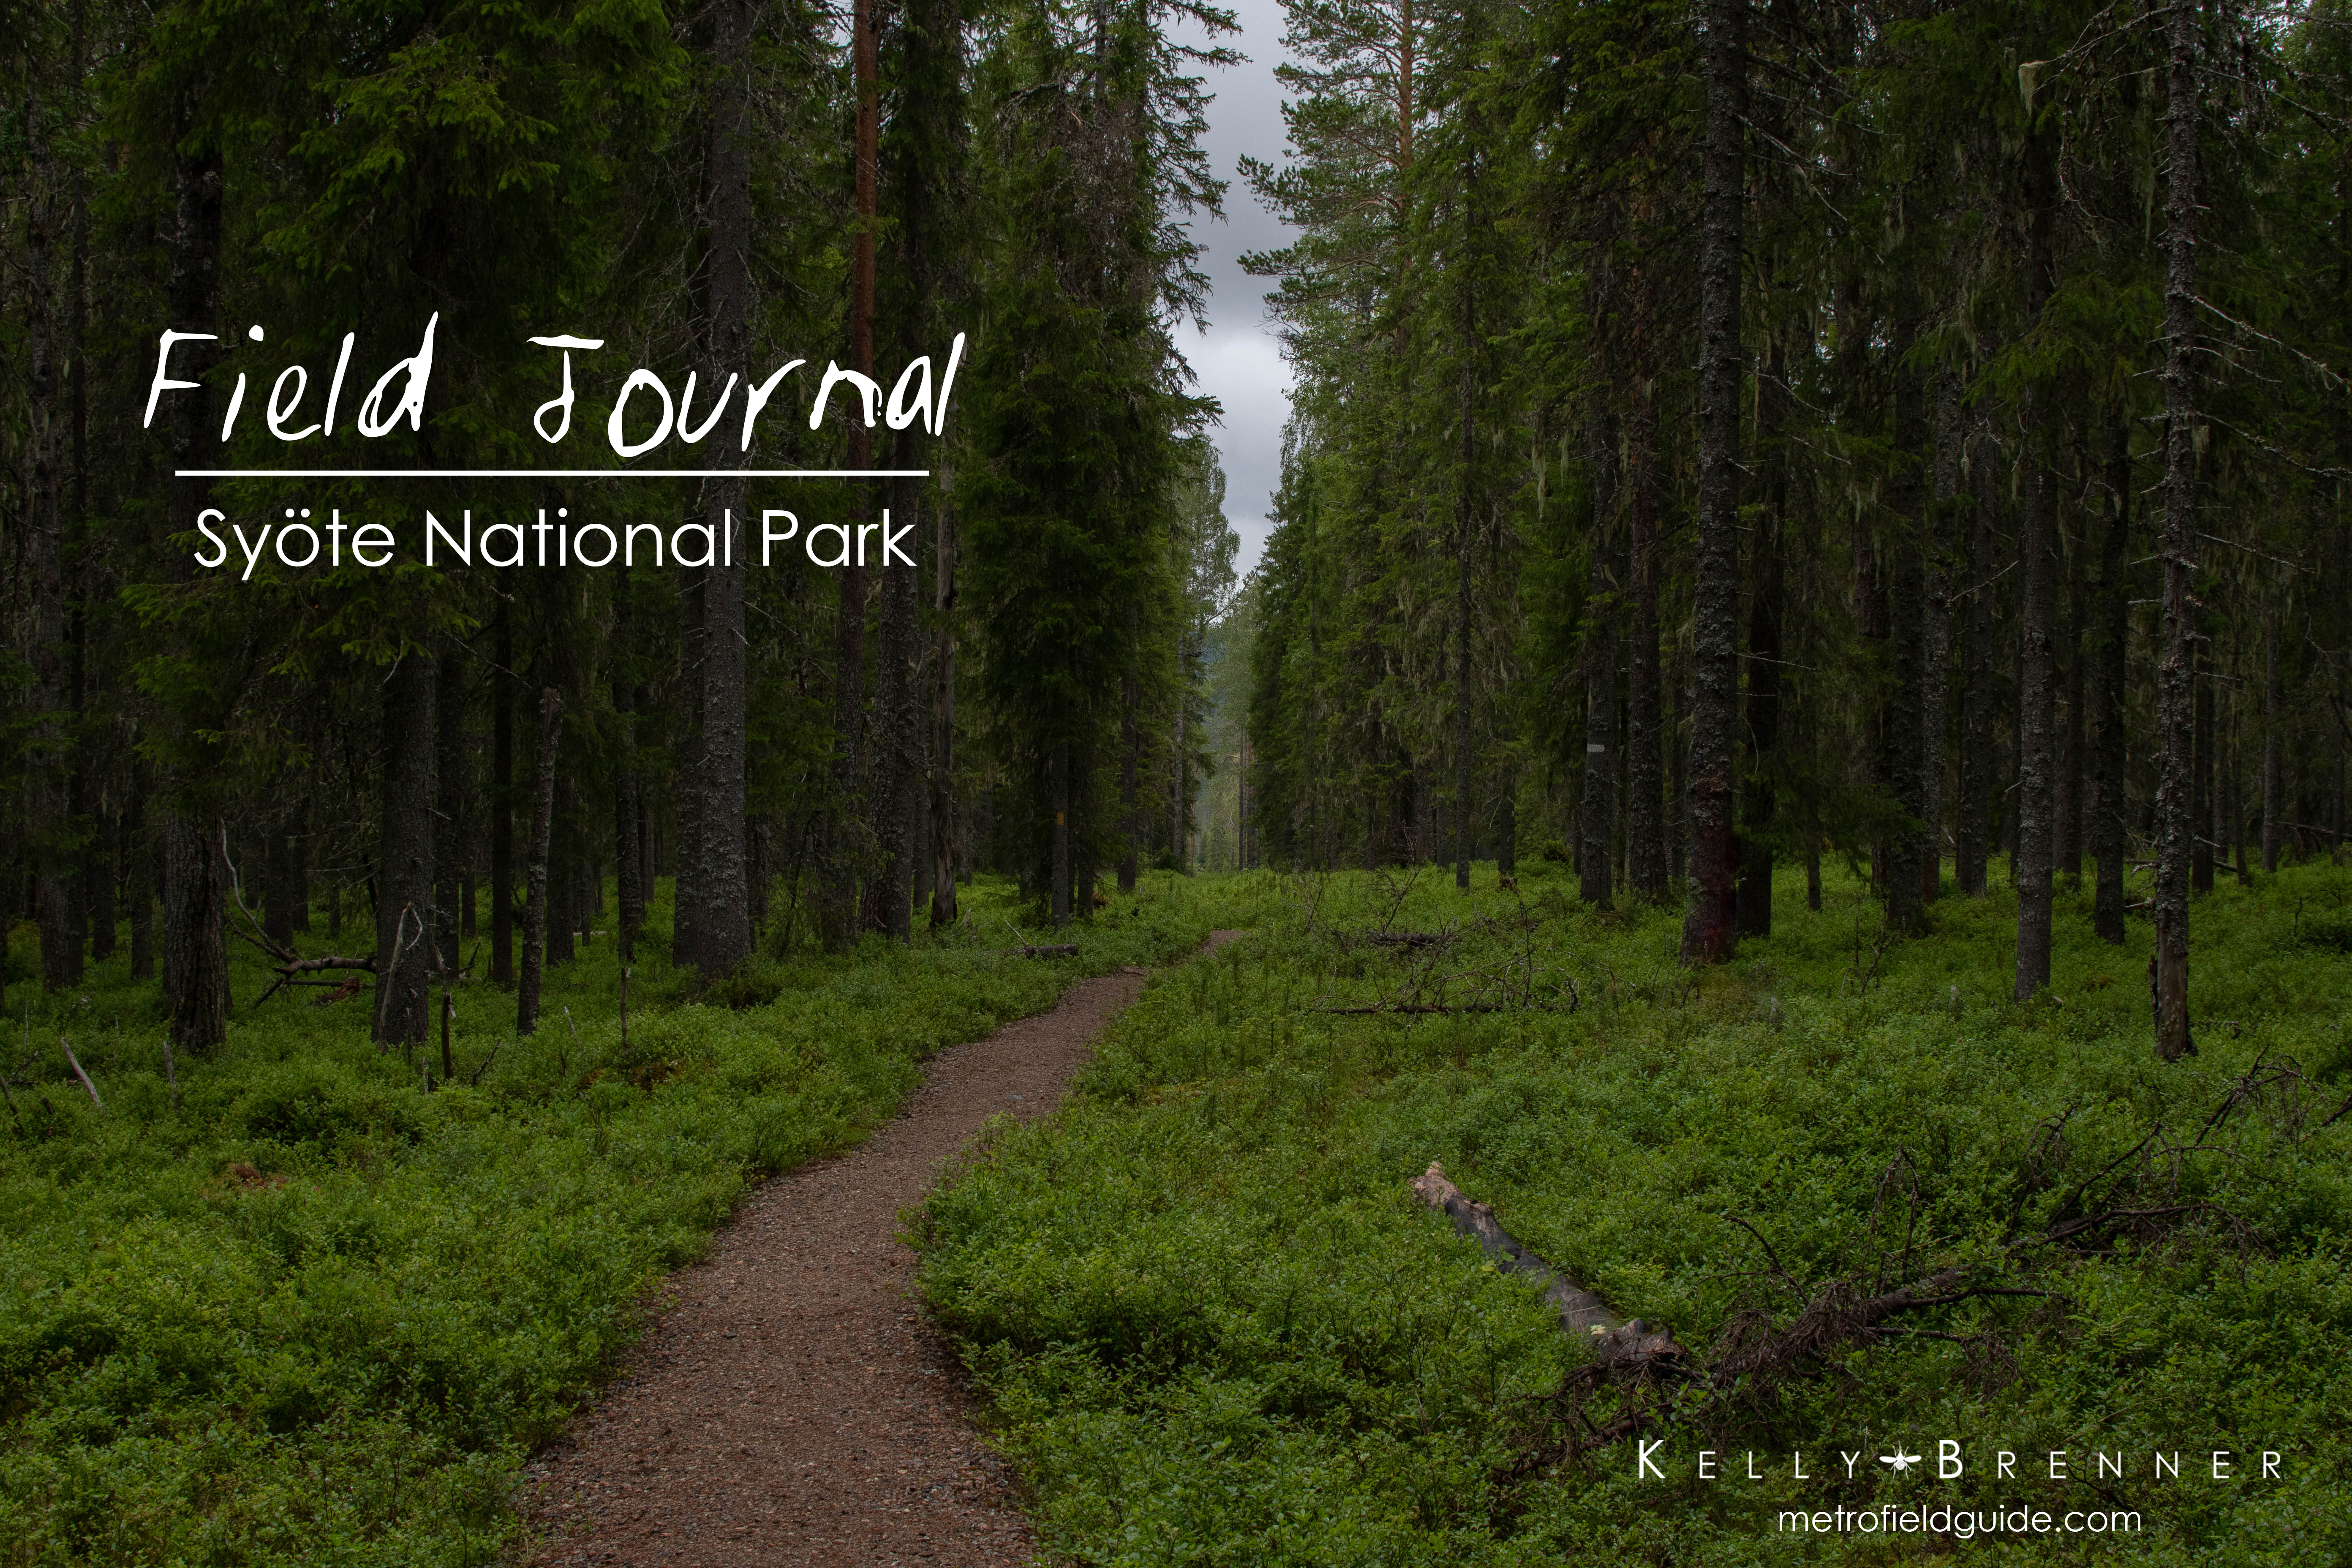 Field Journal: Syöte National Park